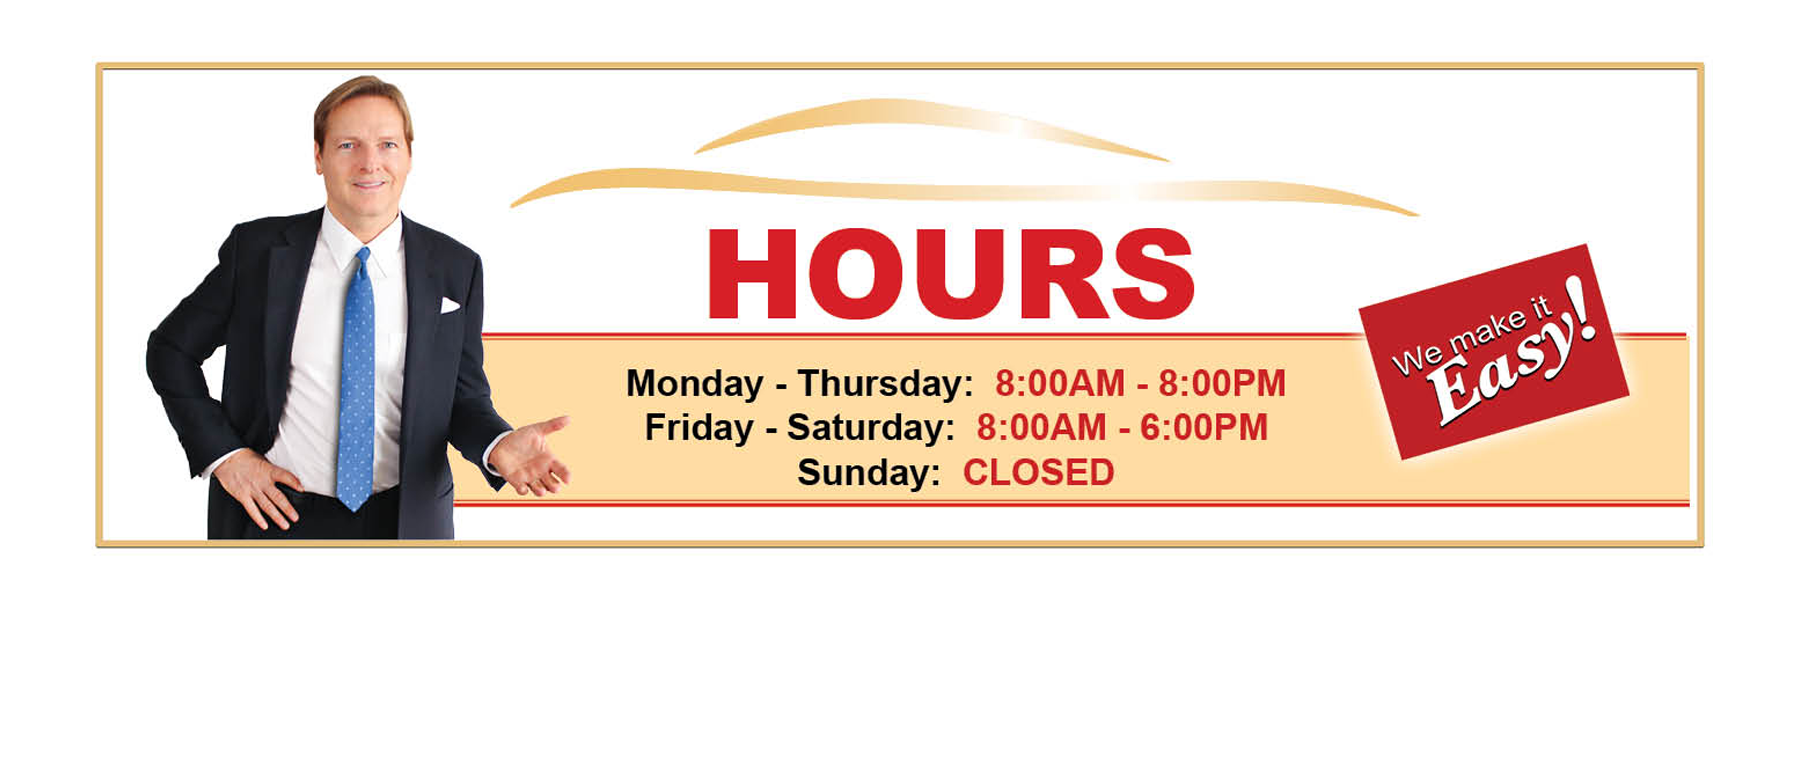 Kelly Honda Business Hours of Operation (Closed Sunday)